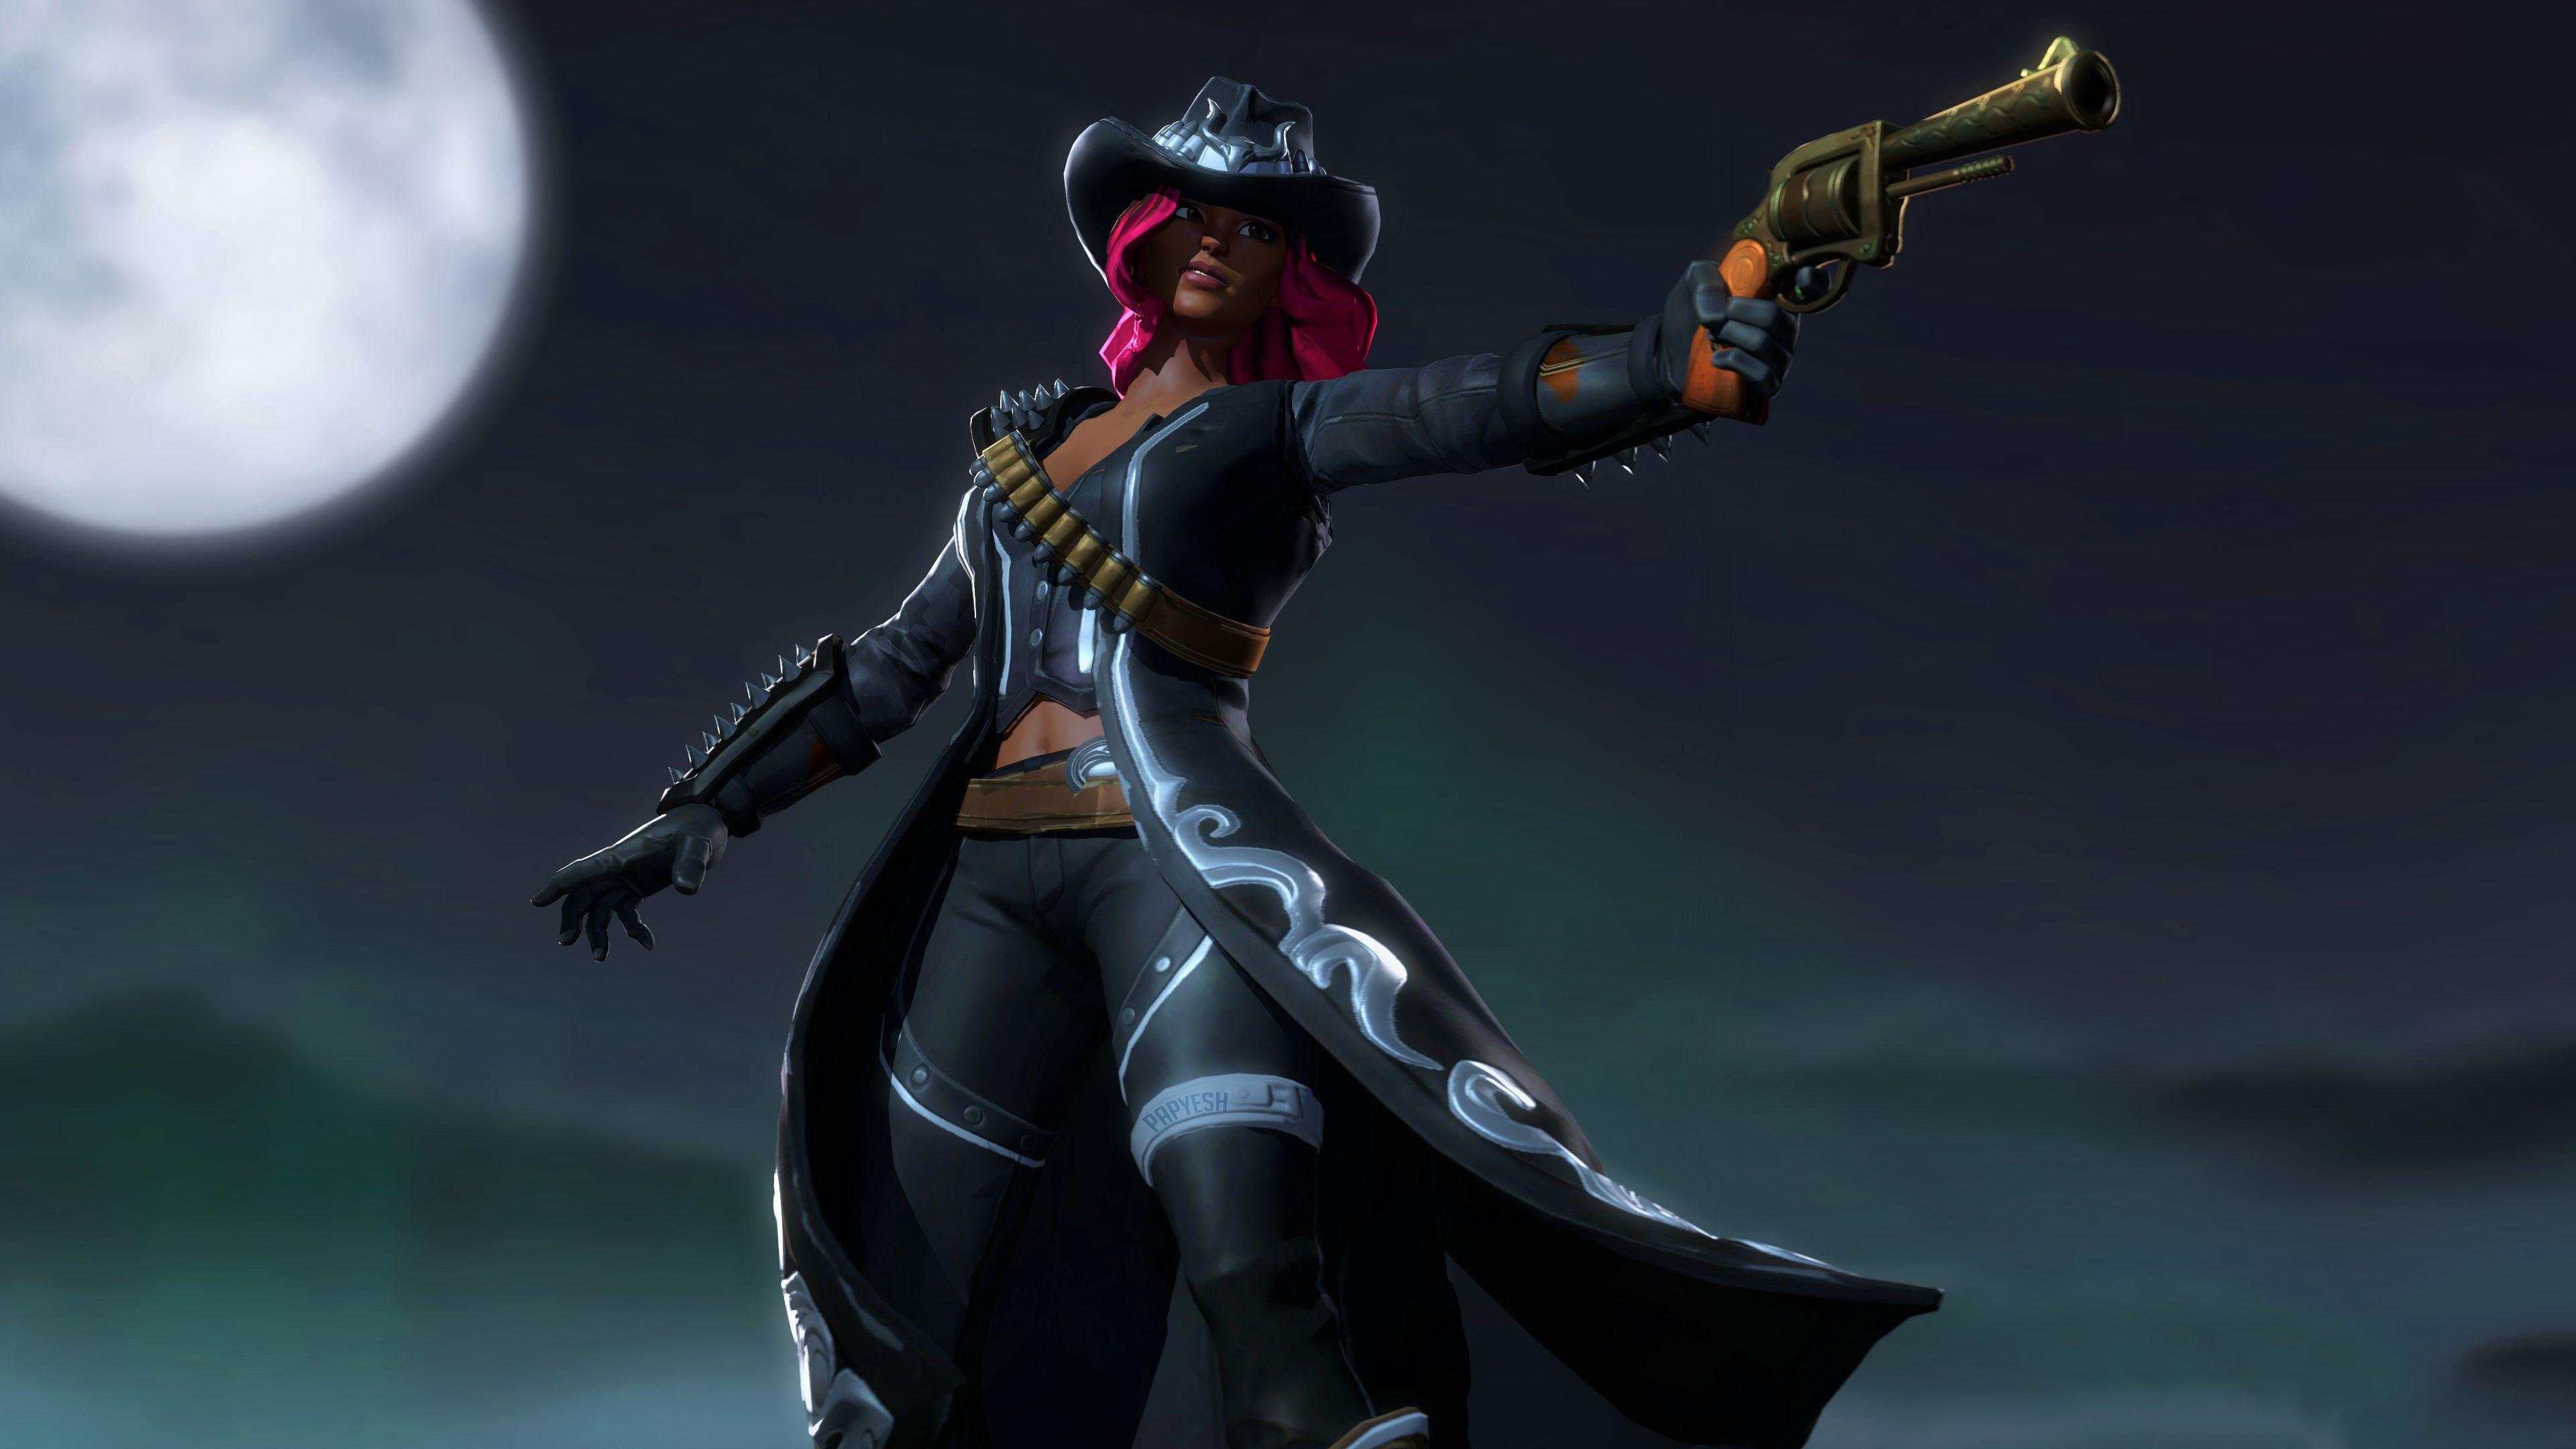 Calamity Fortnite Season 6 4K, HD Games, 4k Wallpapers, Images ...